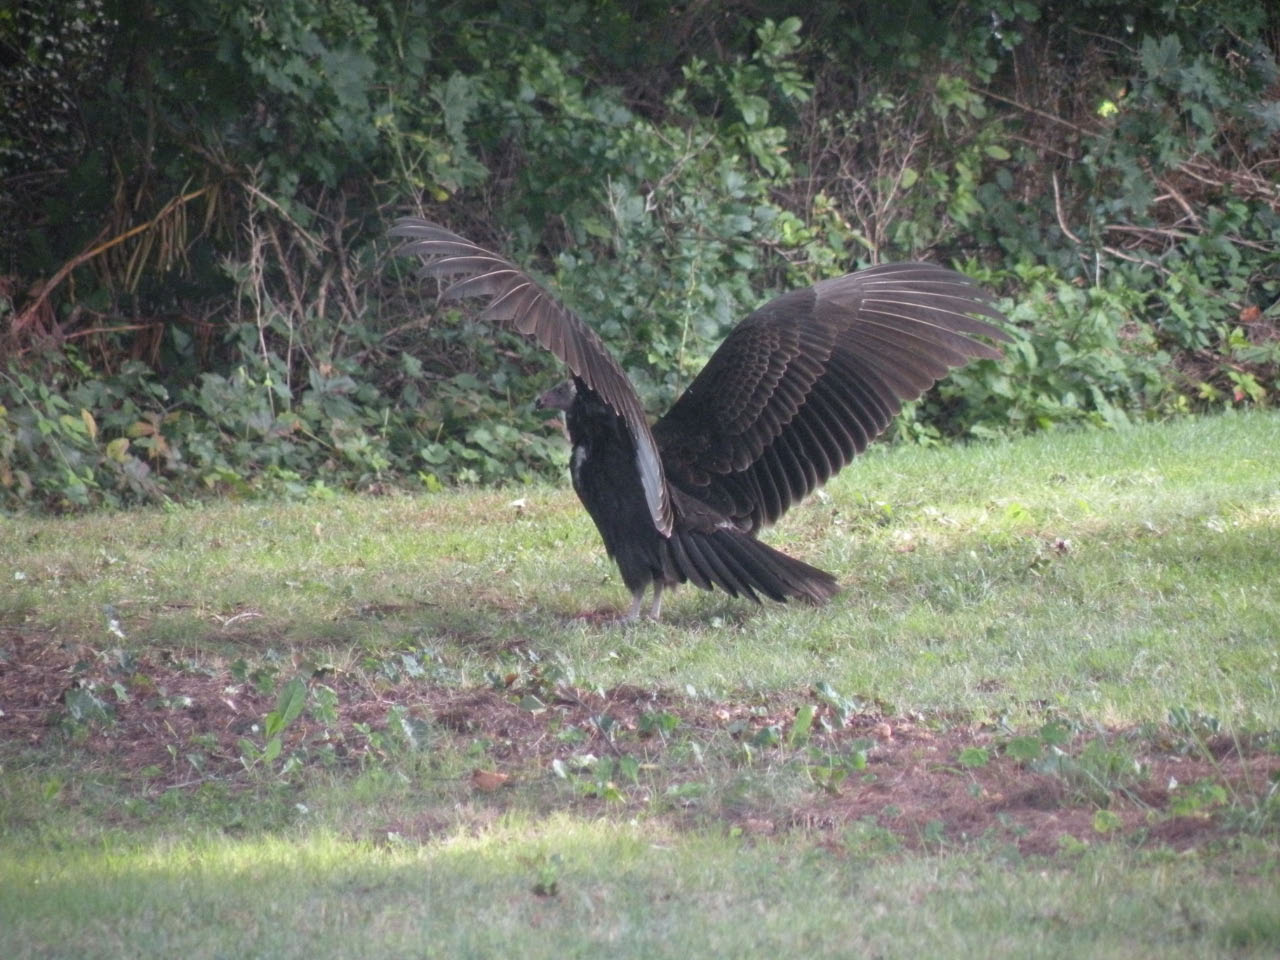 turkey_vulture-09-16-2009-2